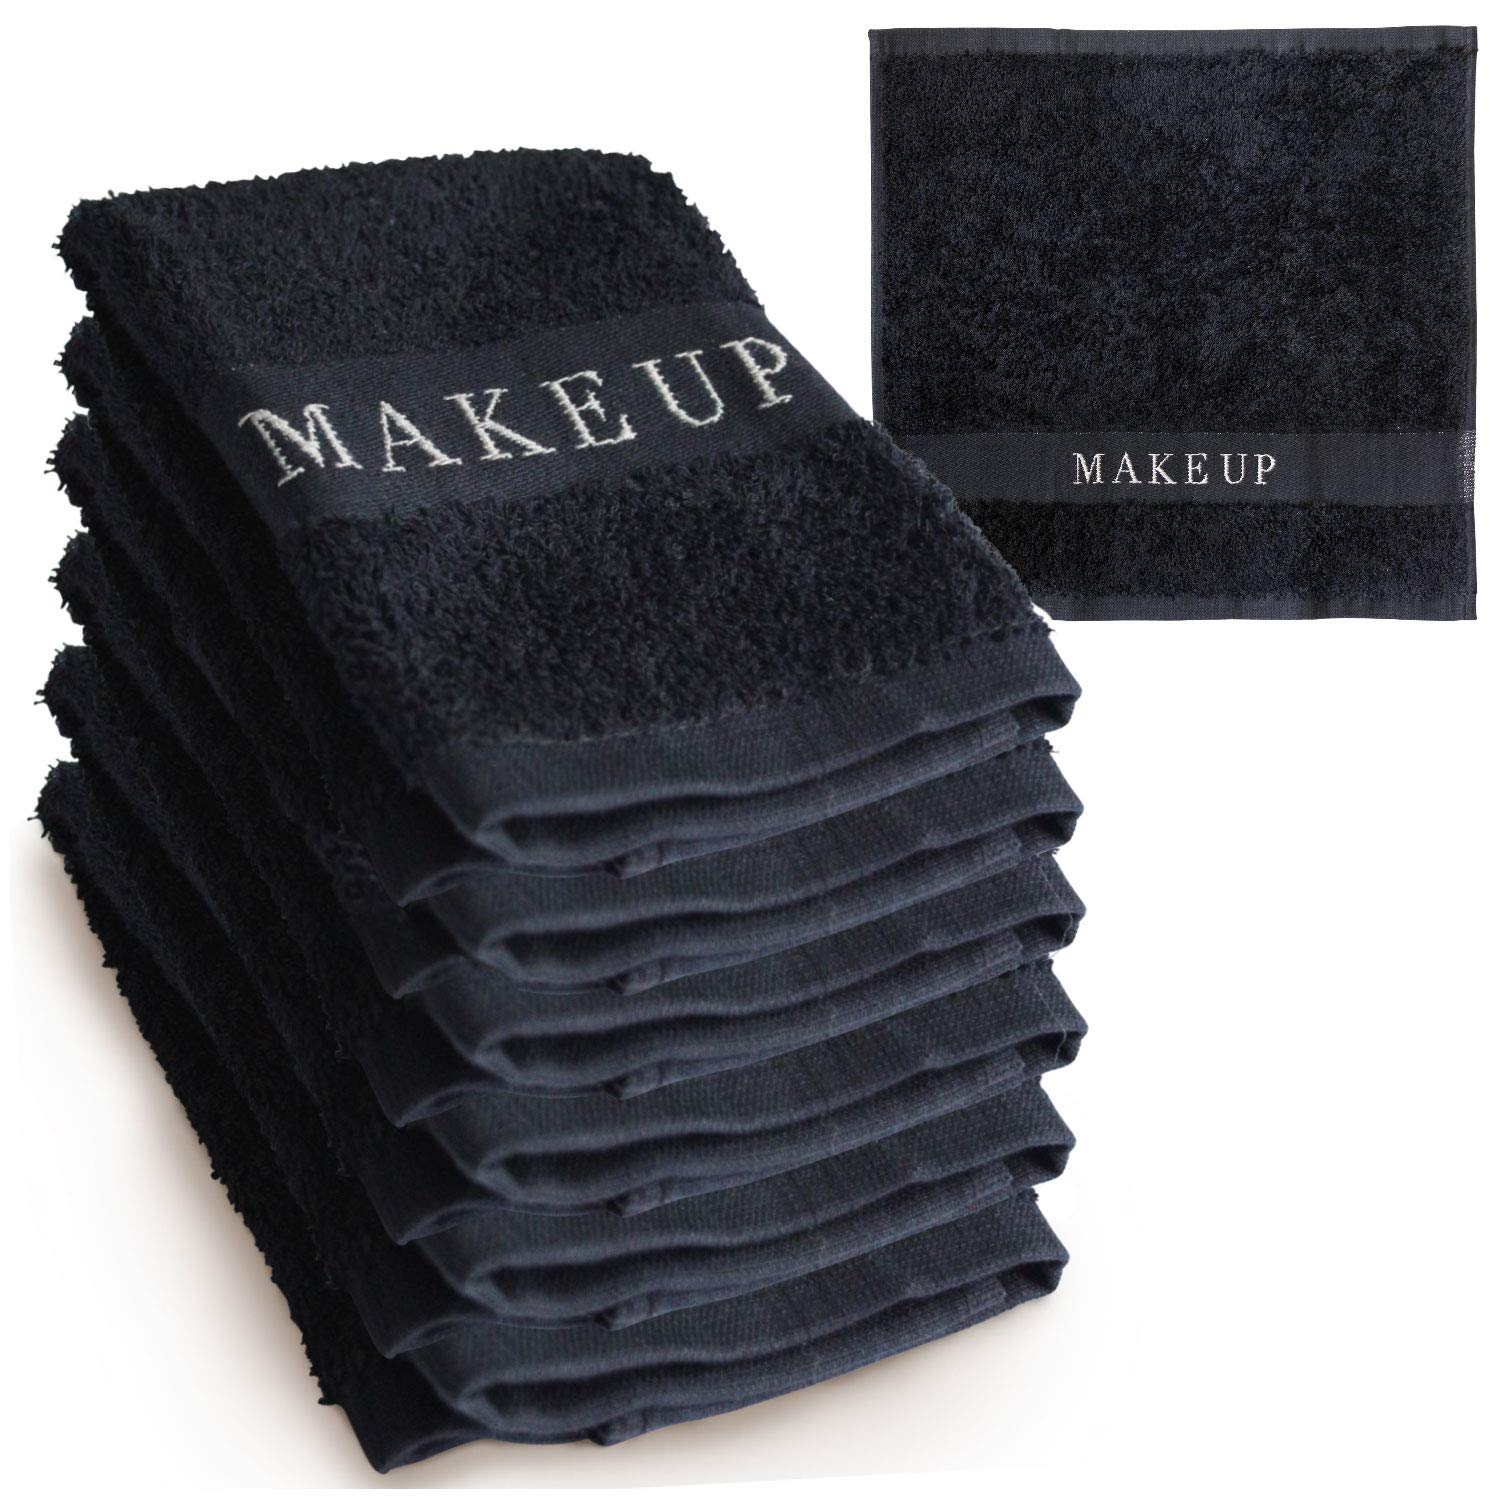 The Little Black Towel Makeup Remover Cloth - Luxury Washcloths for Gentle Face Wash & Removing of Eye Liner & Mascara, plus Foundation Eraser w/ Bleach Resistant Cotton & Soft Jacquard Lettering (6)